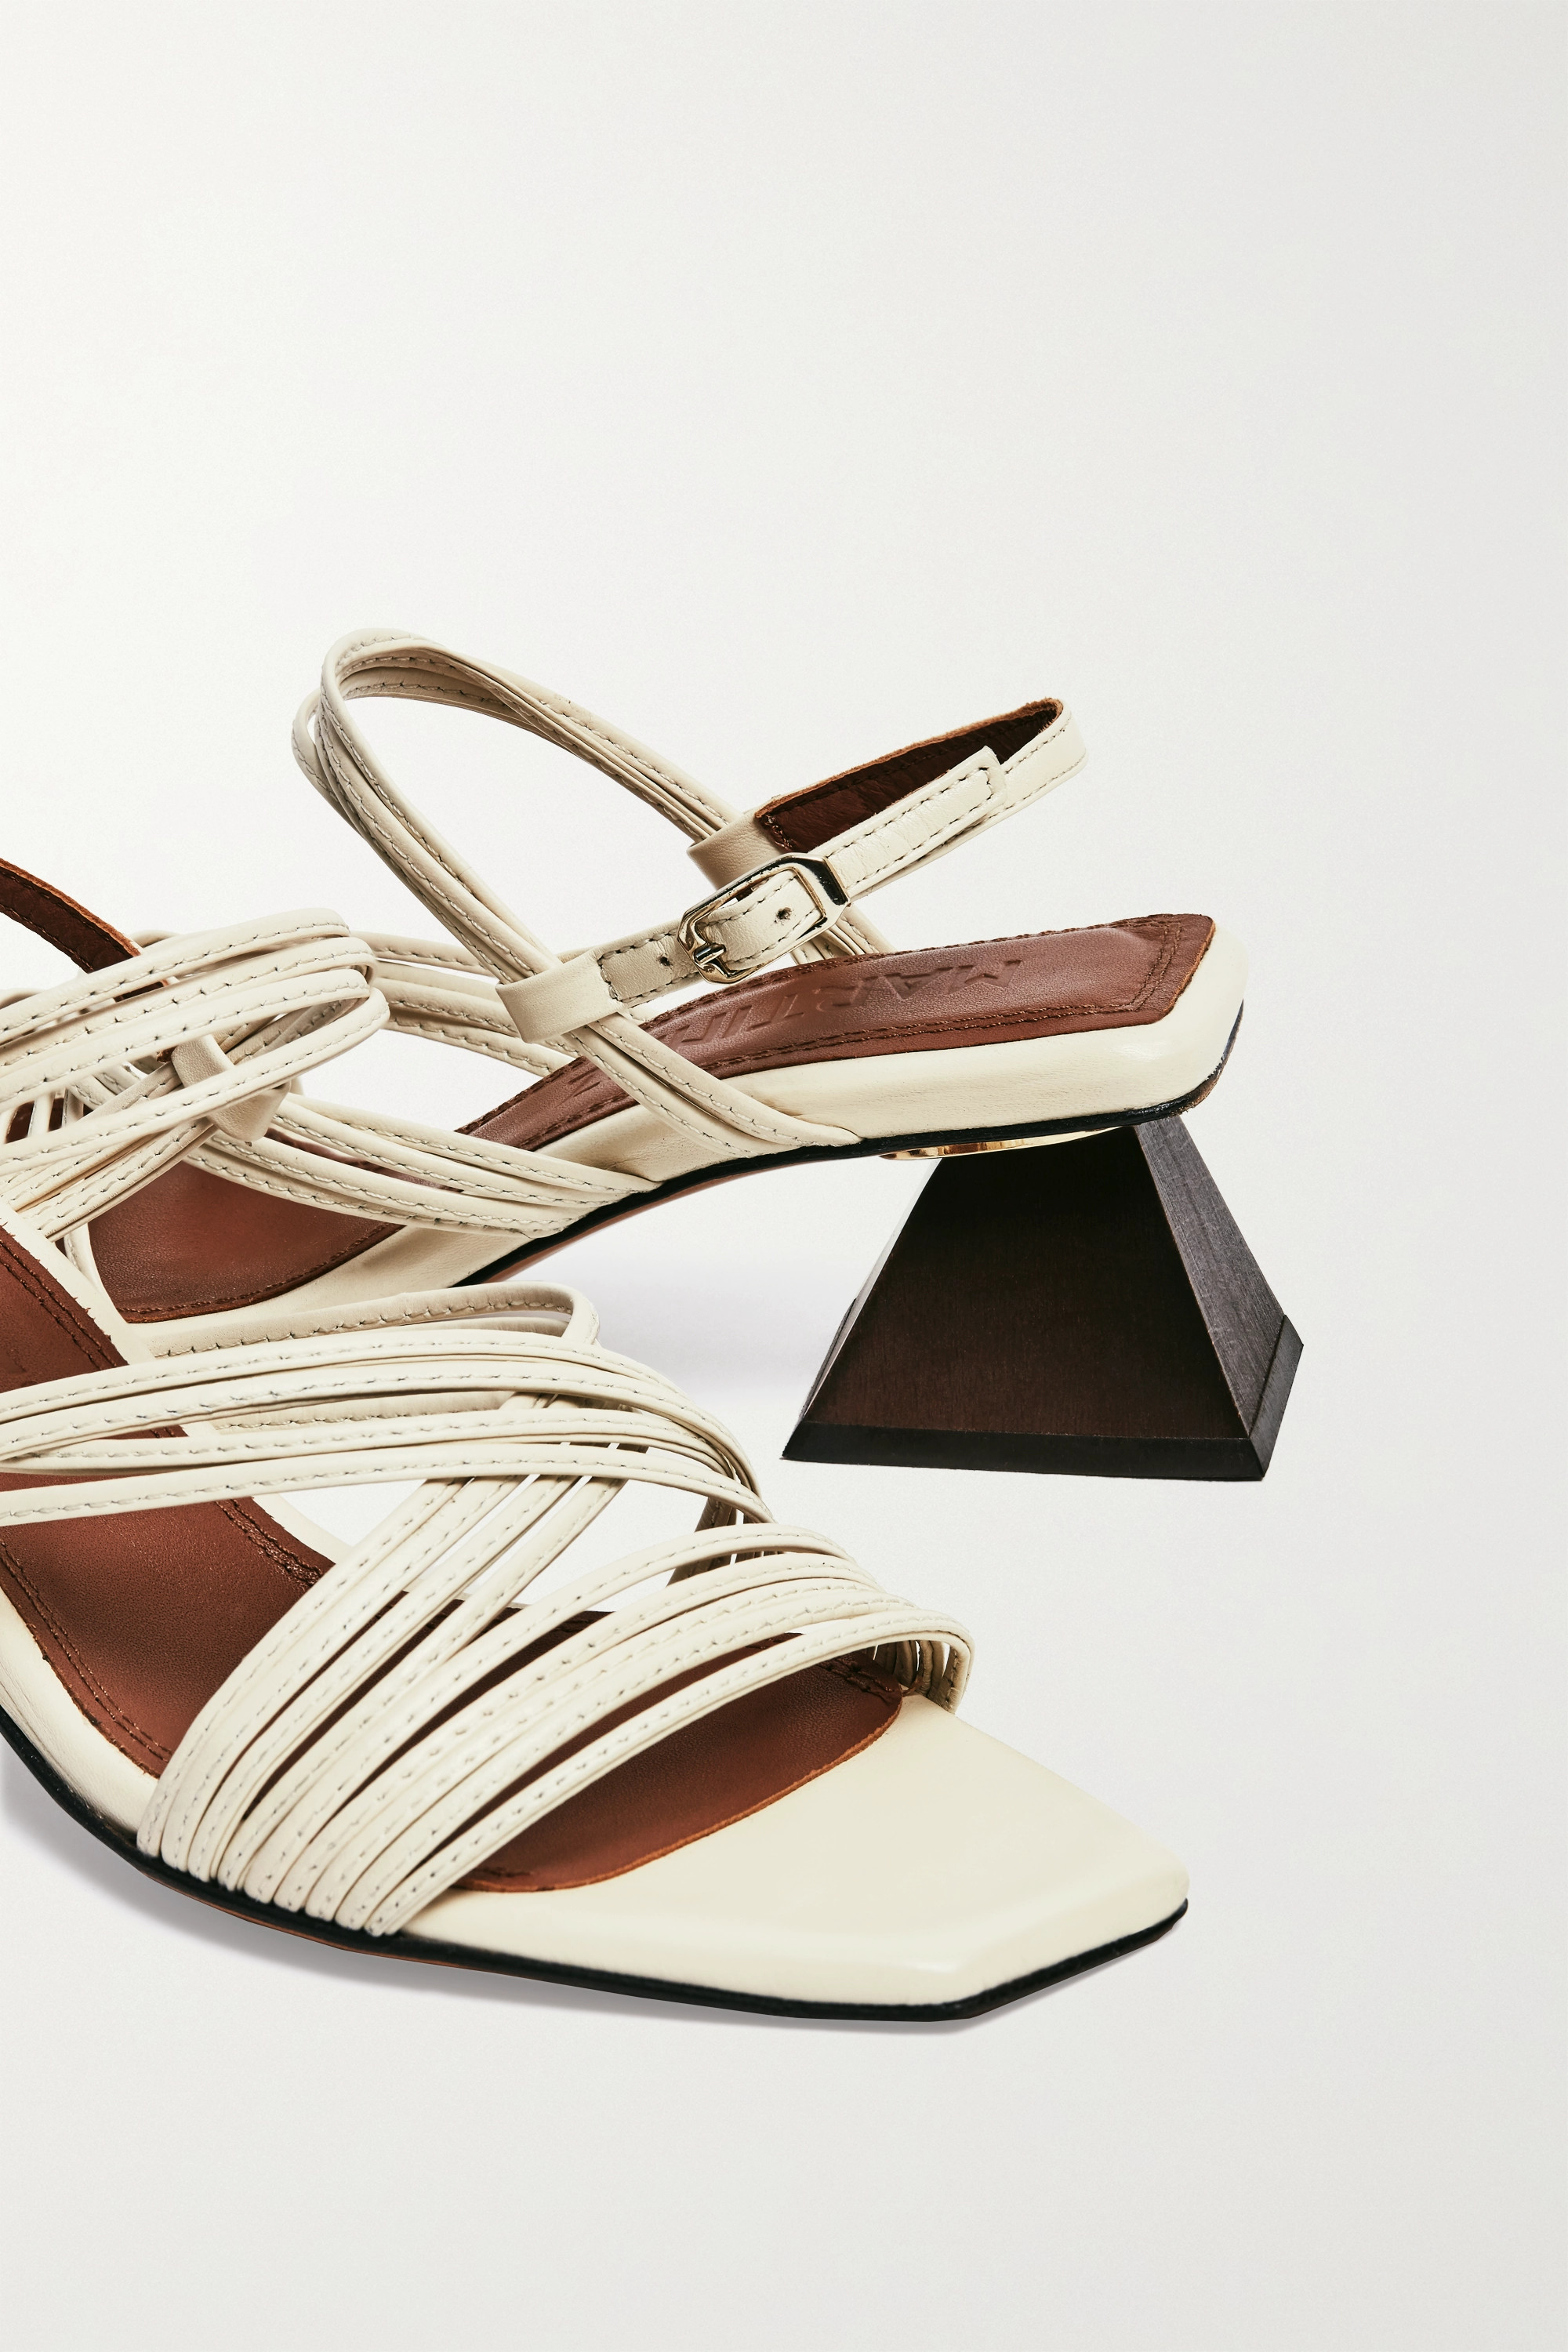 Souliers Martinez Penelope 55 leather slingback sandals